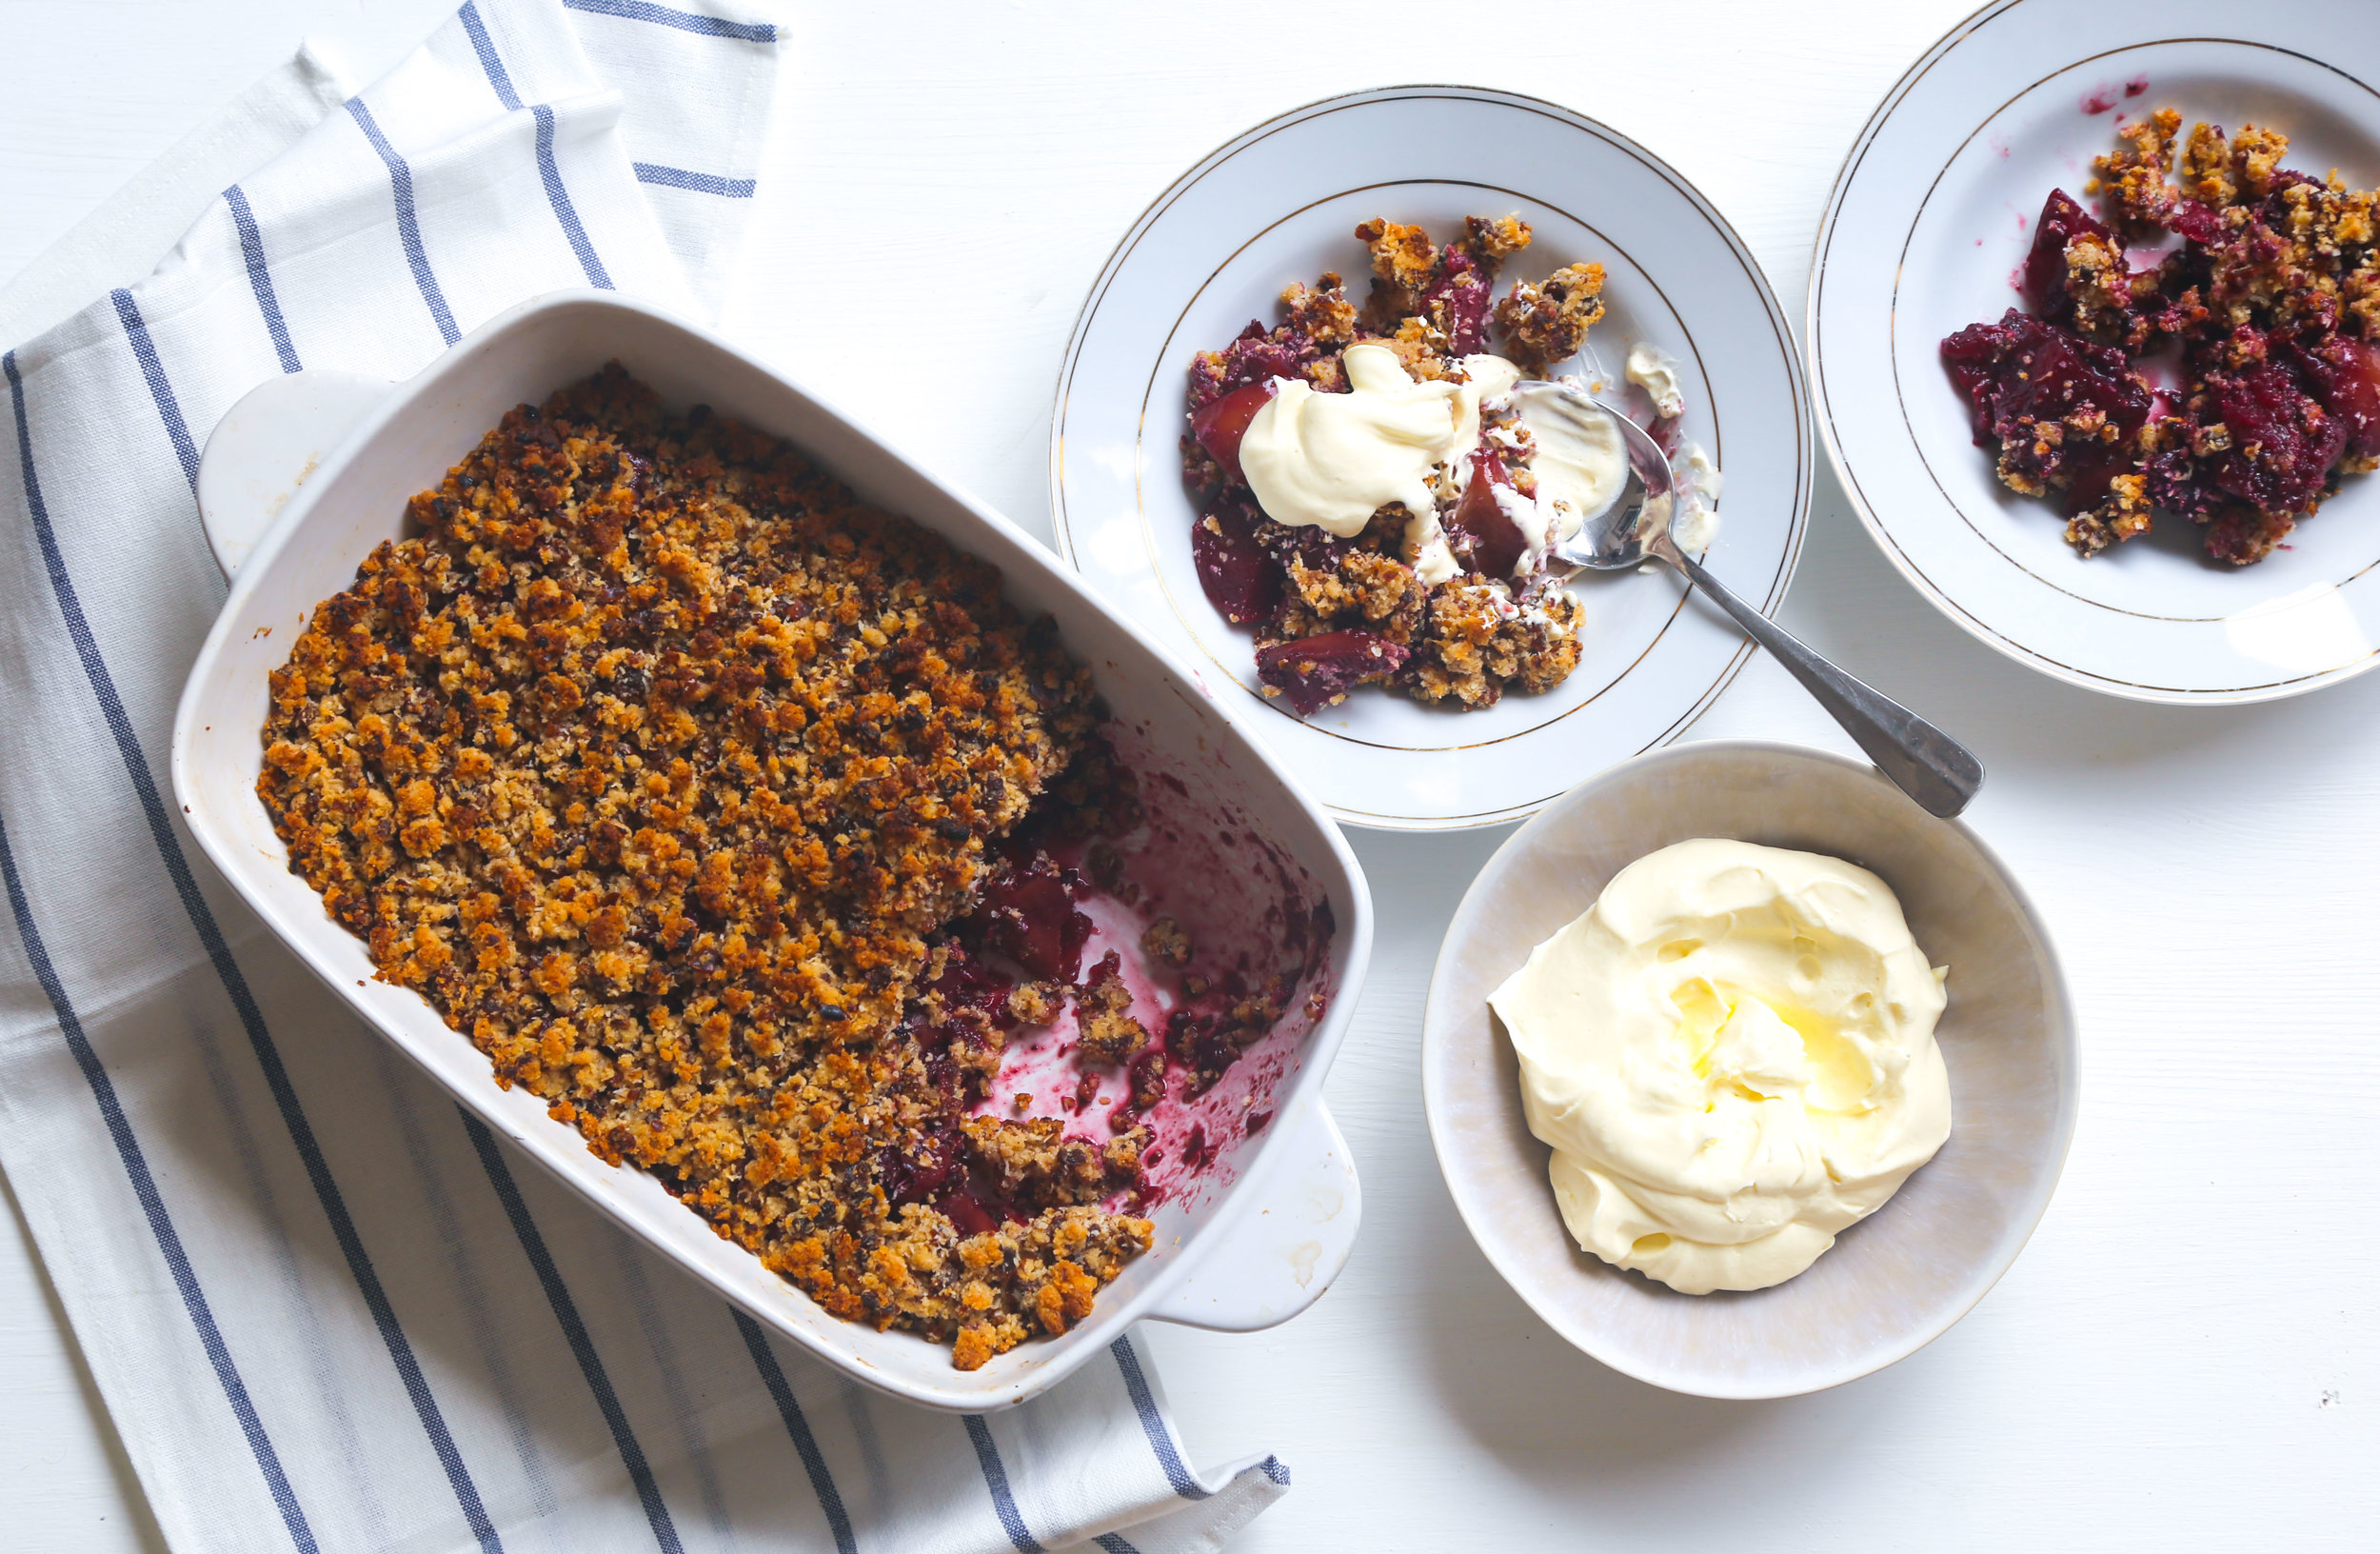 Apple Crumble -            With mixed berries, and whipped cream